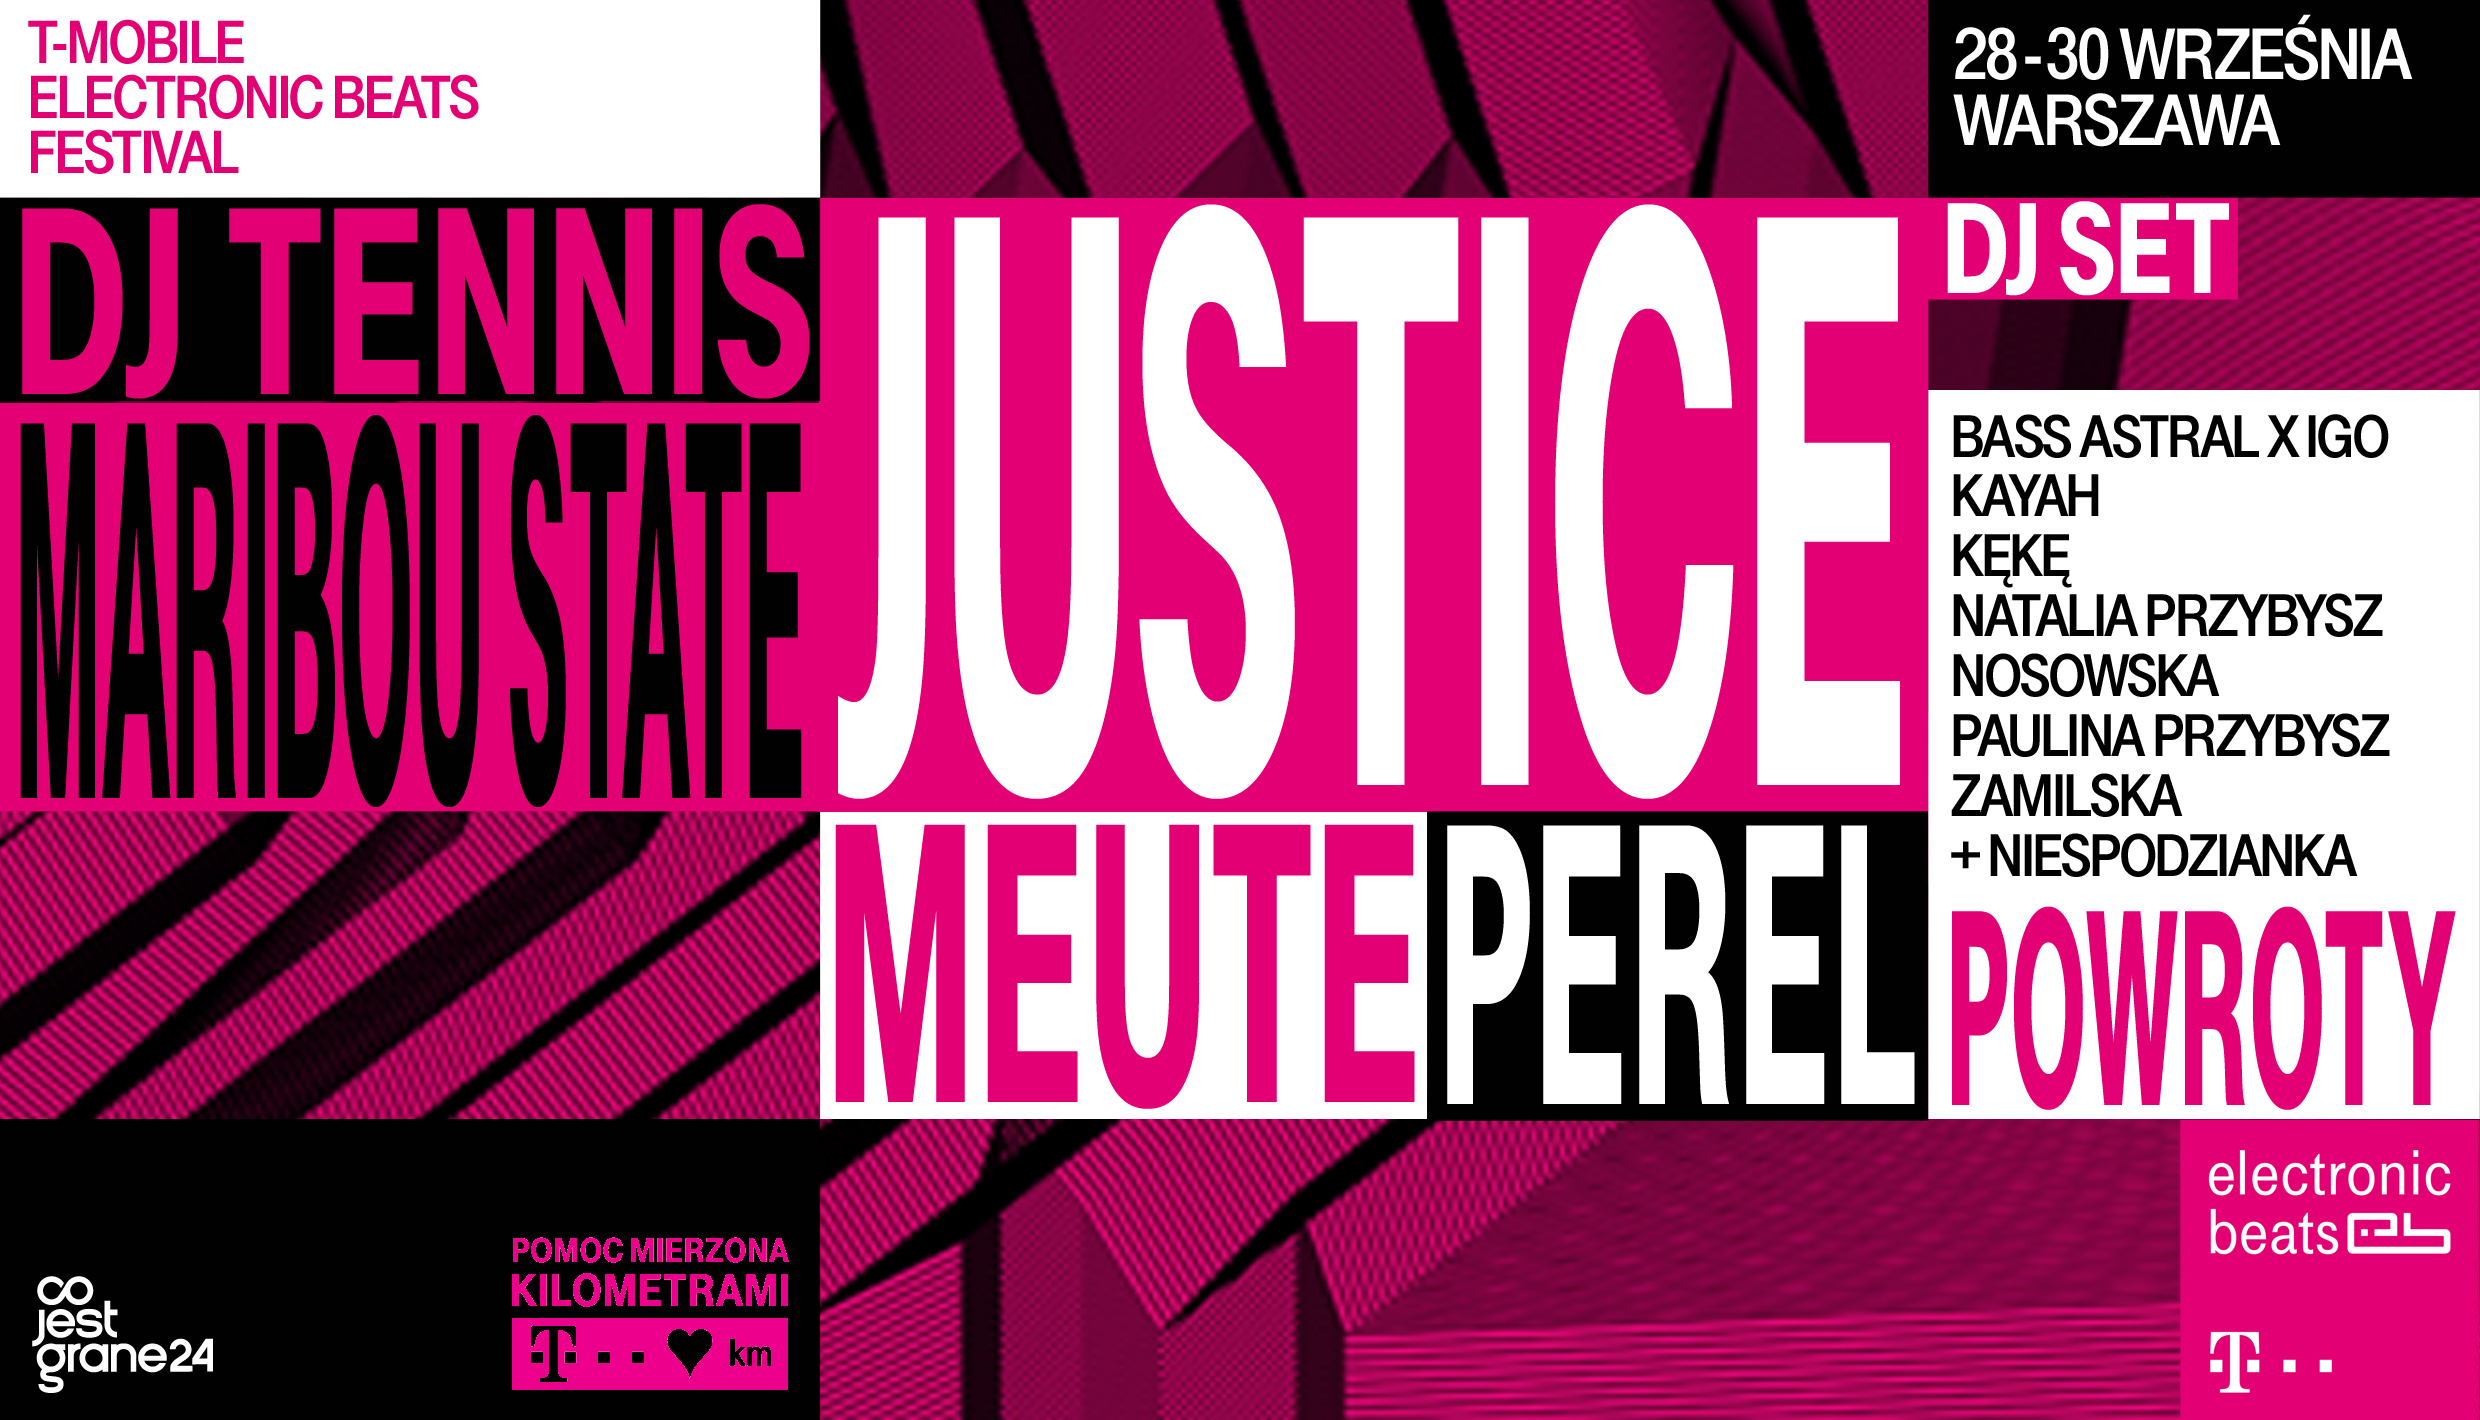 EB PL Festiwal with Justice